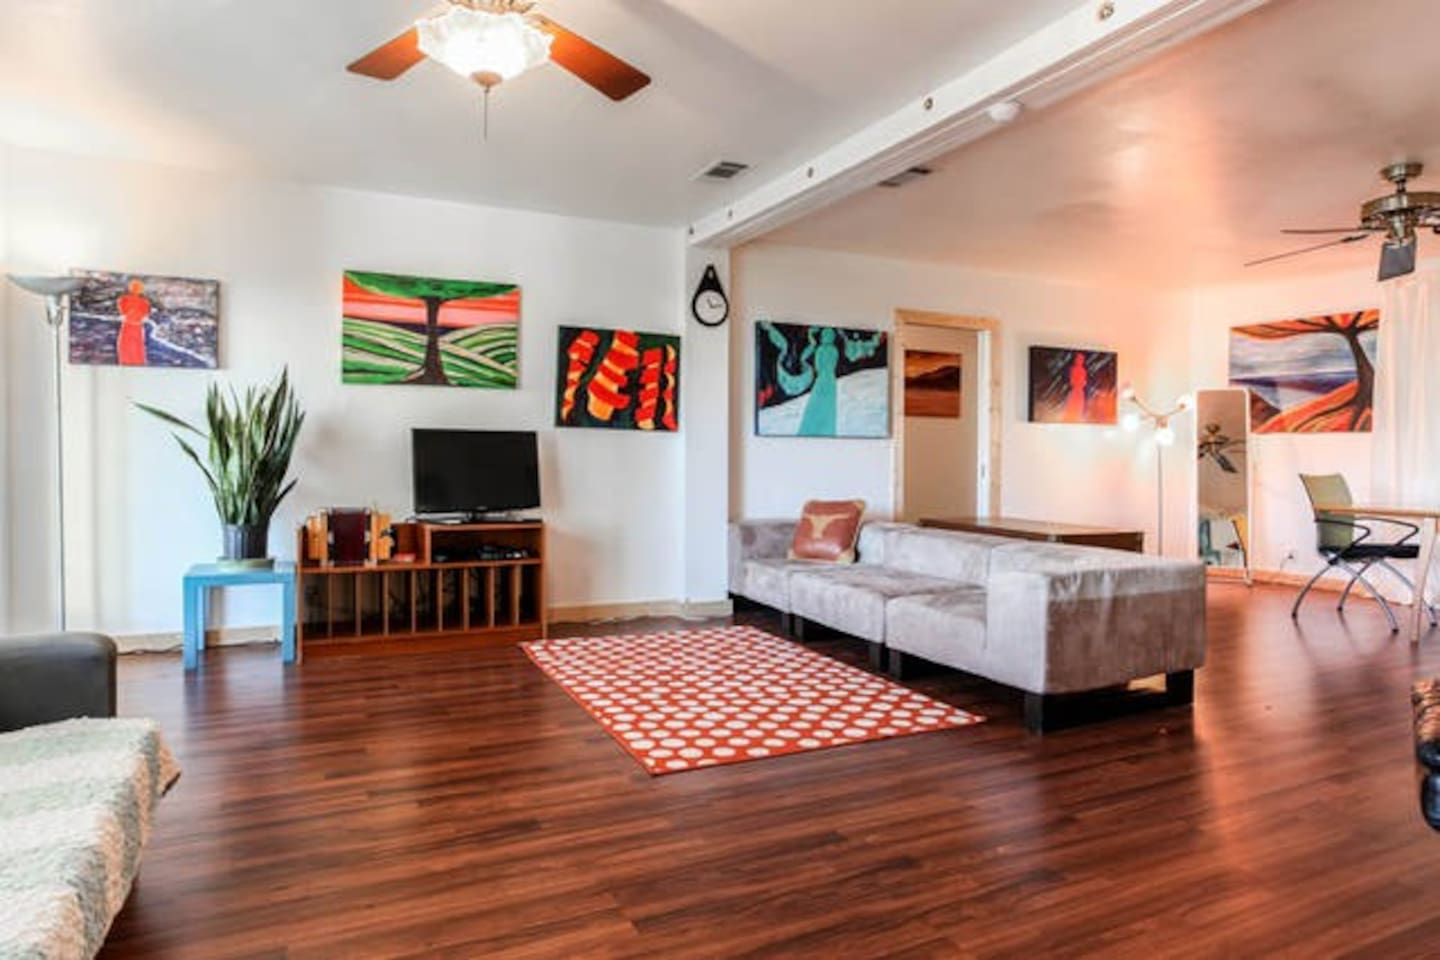 Welcome to our spacious 3/2 on the boardwalk in downtown Austin. I love hosting and want to make your group trip easy. I can provide housing, group activities, and group transportation. Read my reviews and check out all the photos!